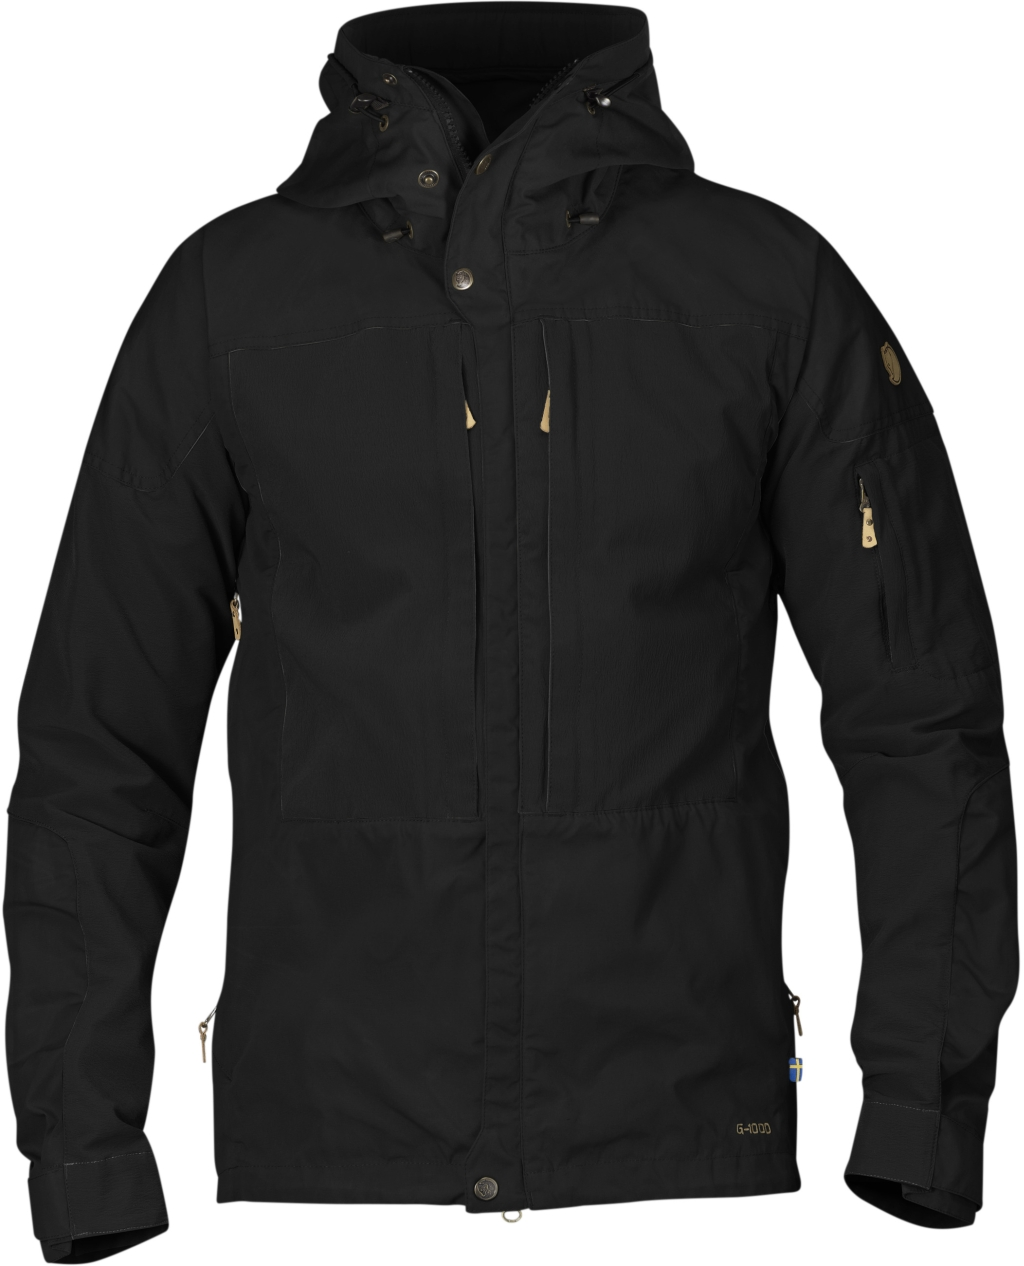 FjallRaven Keb Jacket Black-Black-30